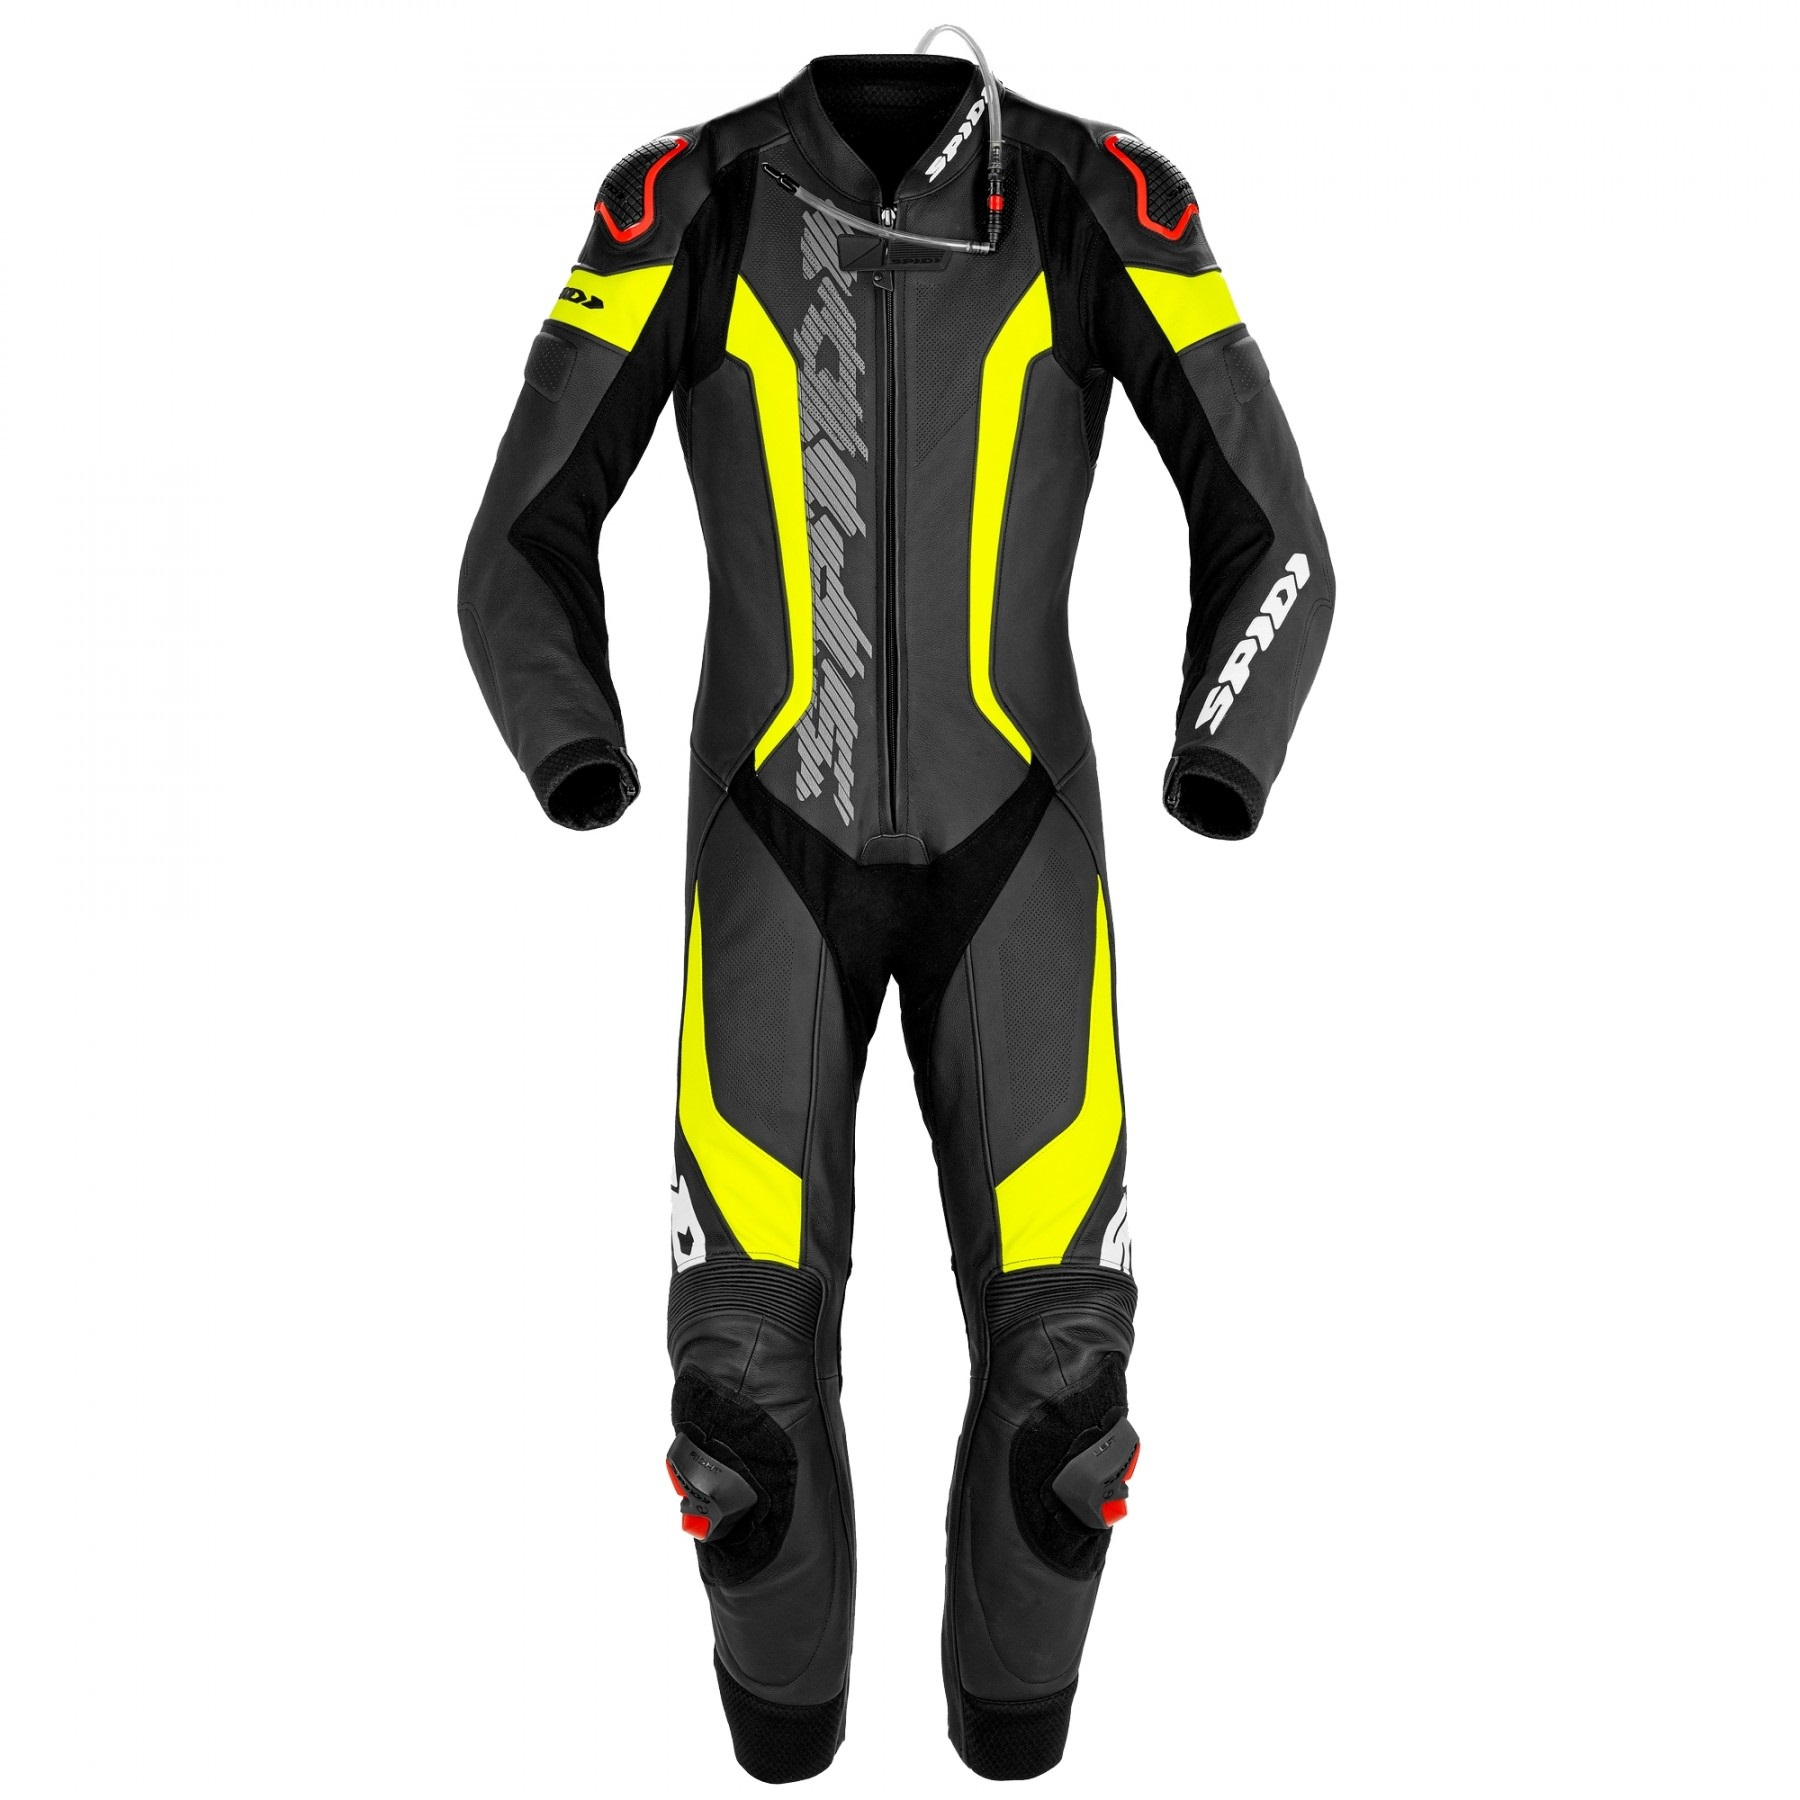 Spidi Laser Pro Perforated Black Fluo Yellow 1 Piece Racing Suit 54